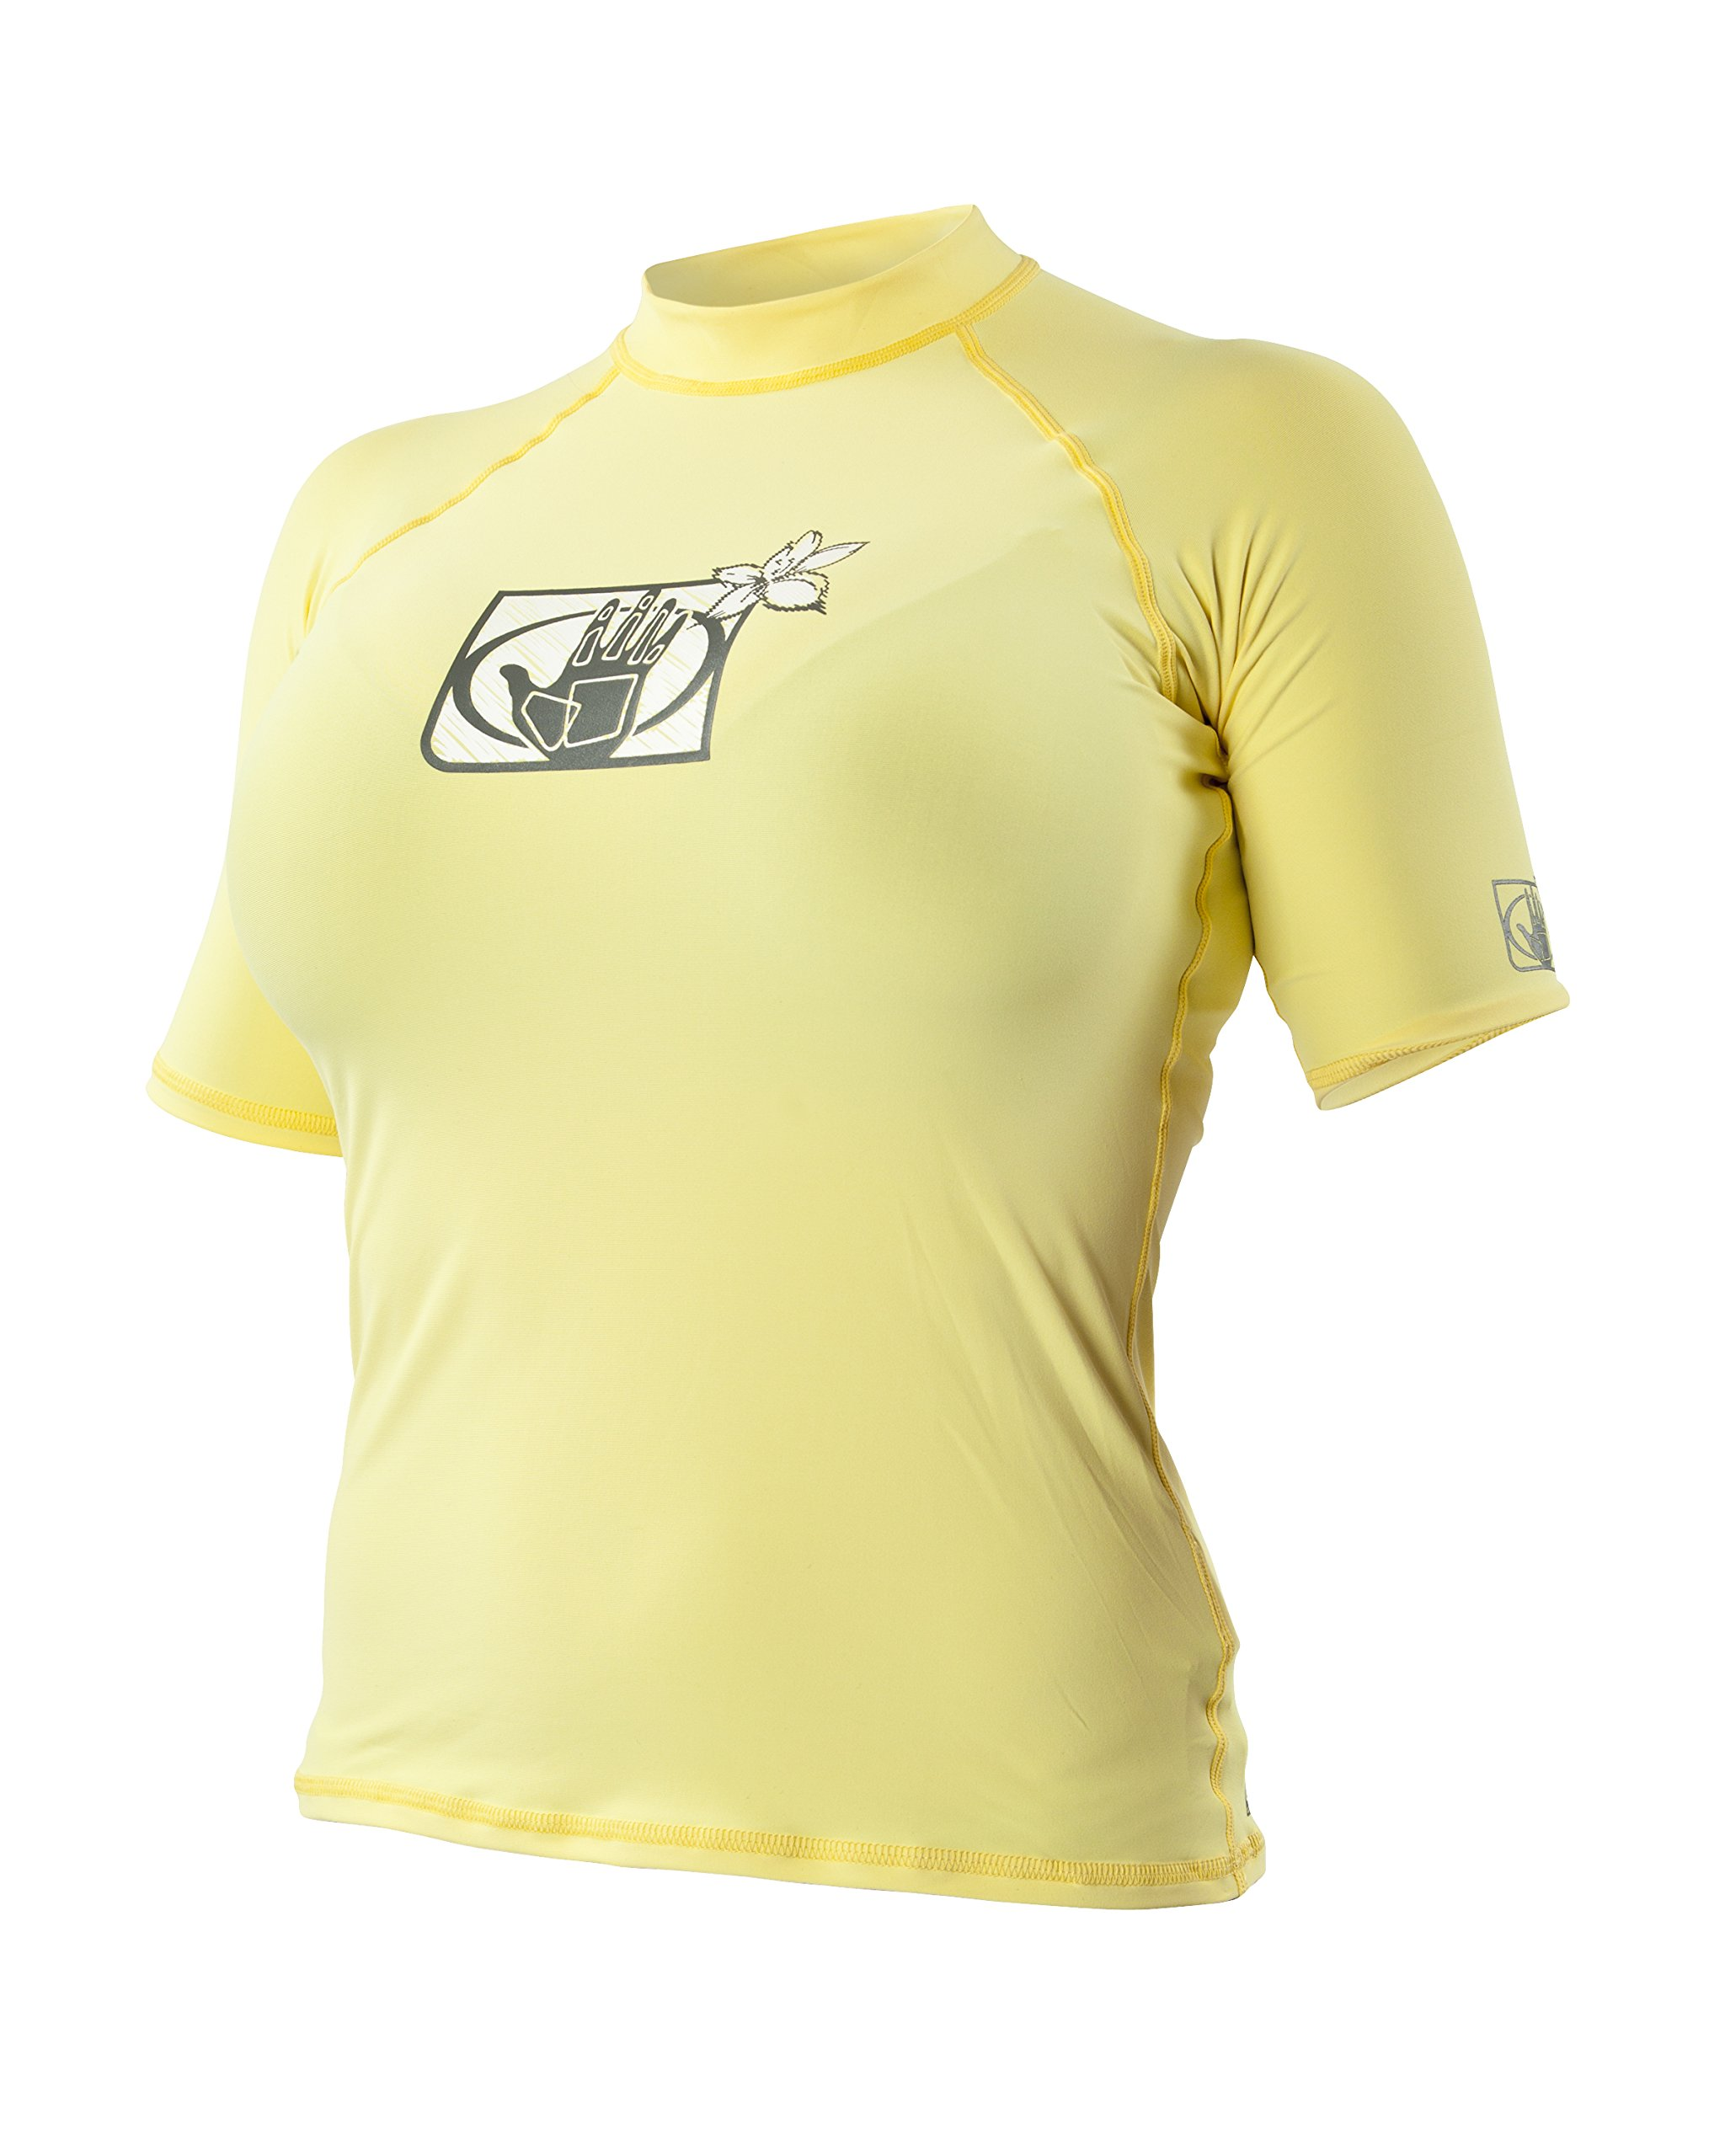 Body Glove Women's Basic Fitted Short Sleeve Rash Guard Tops, Butter, Small by Body Glove